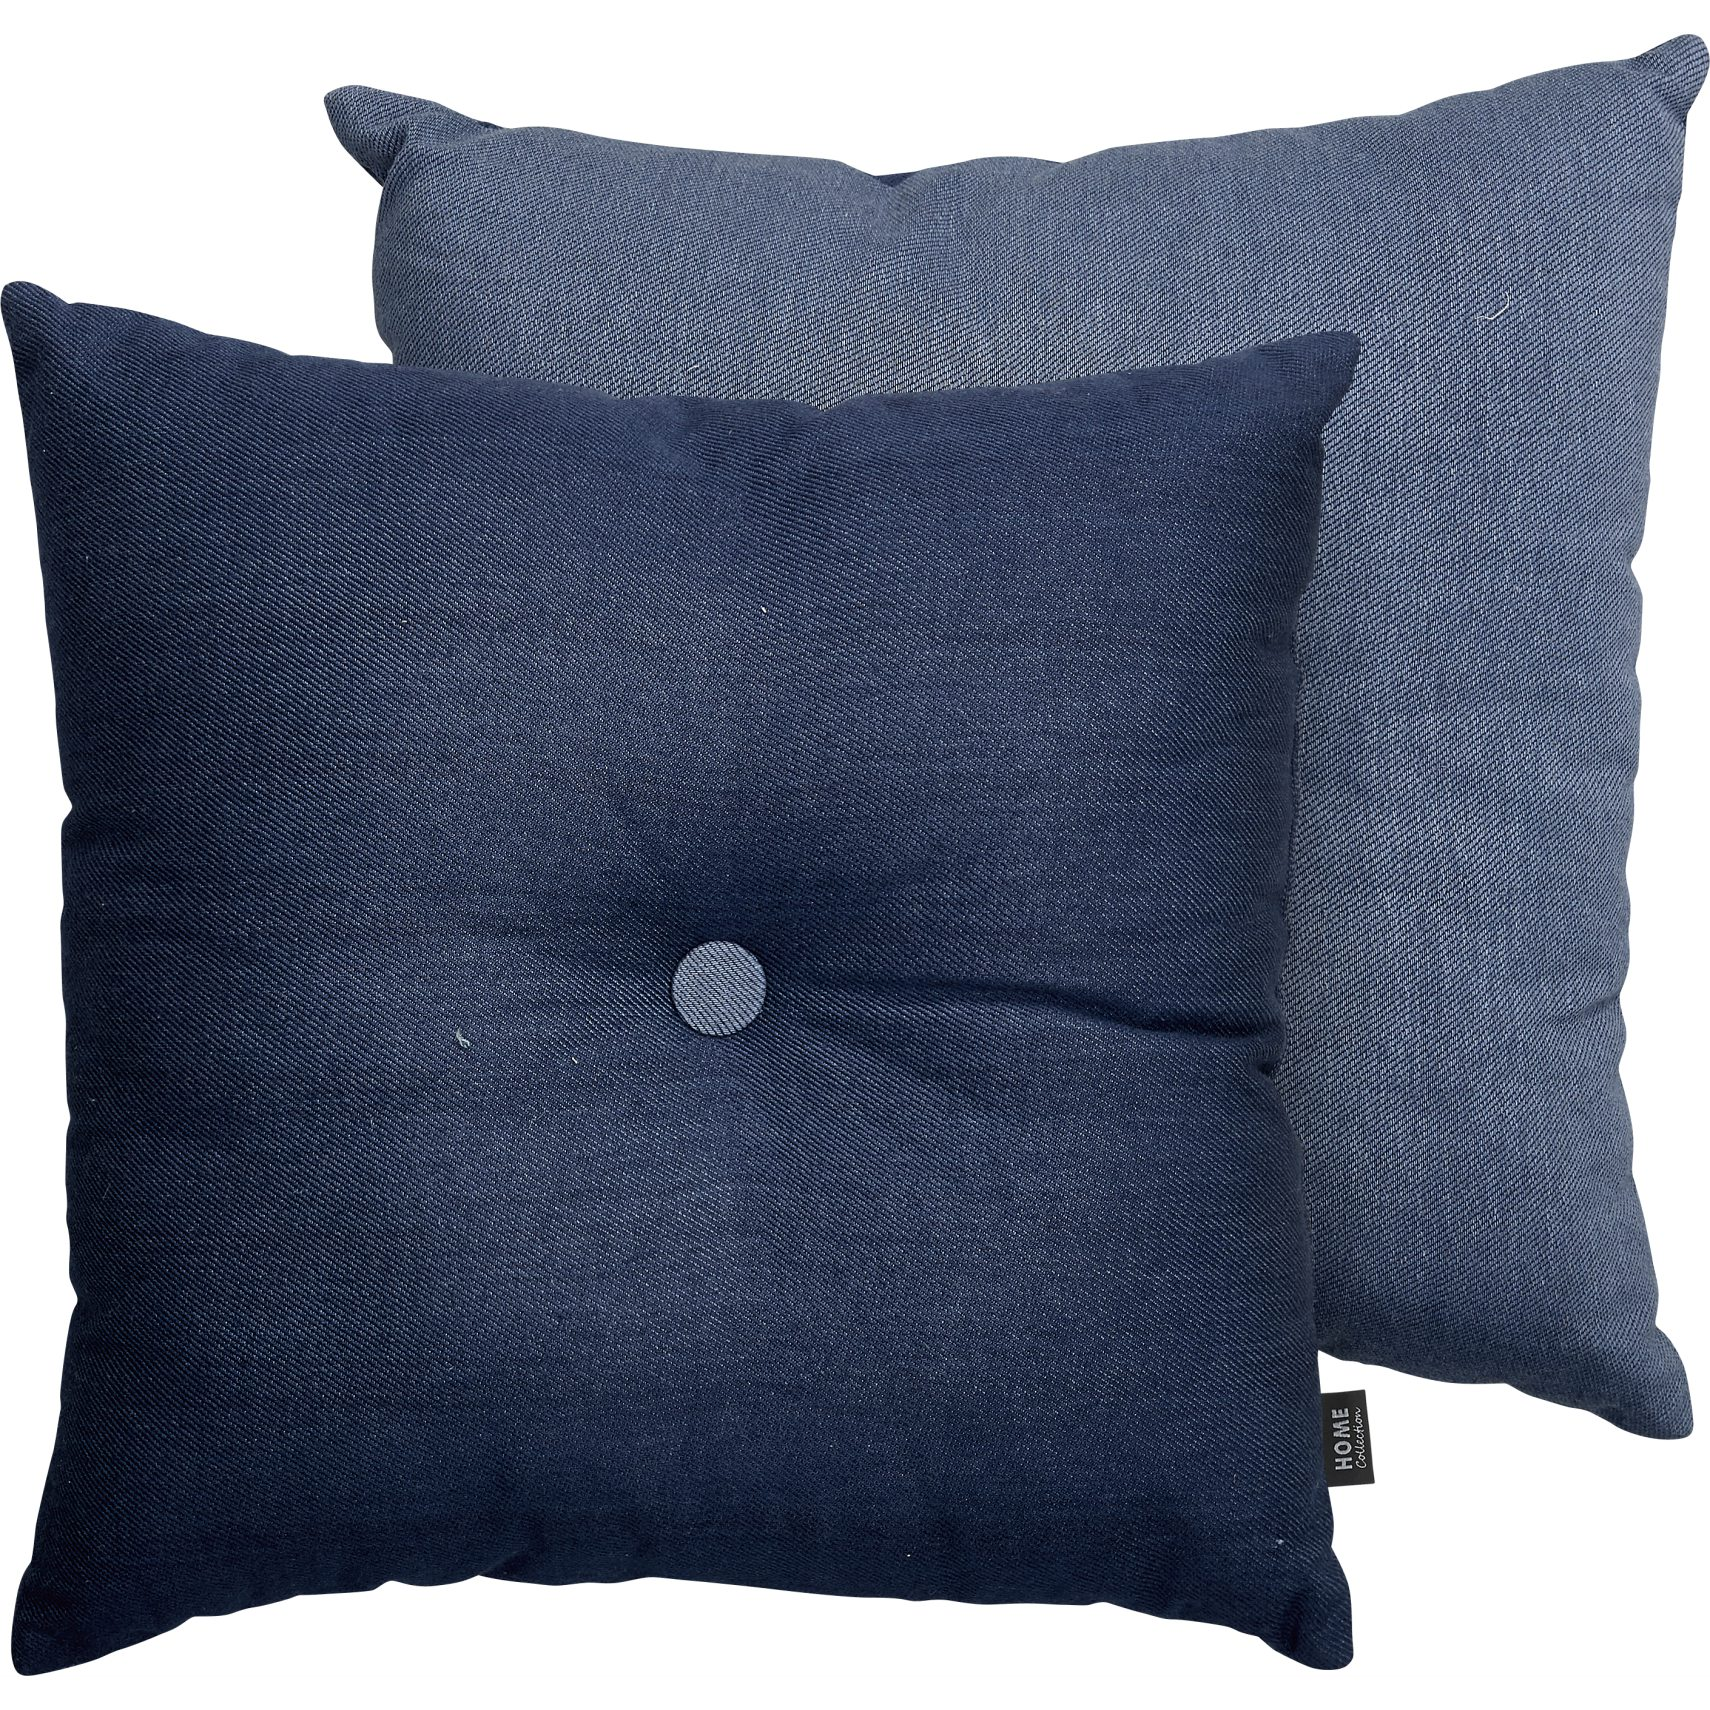 Kosma Pude - Dress blue/flint stone bomuld og 1 knap